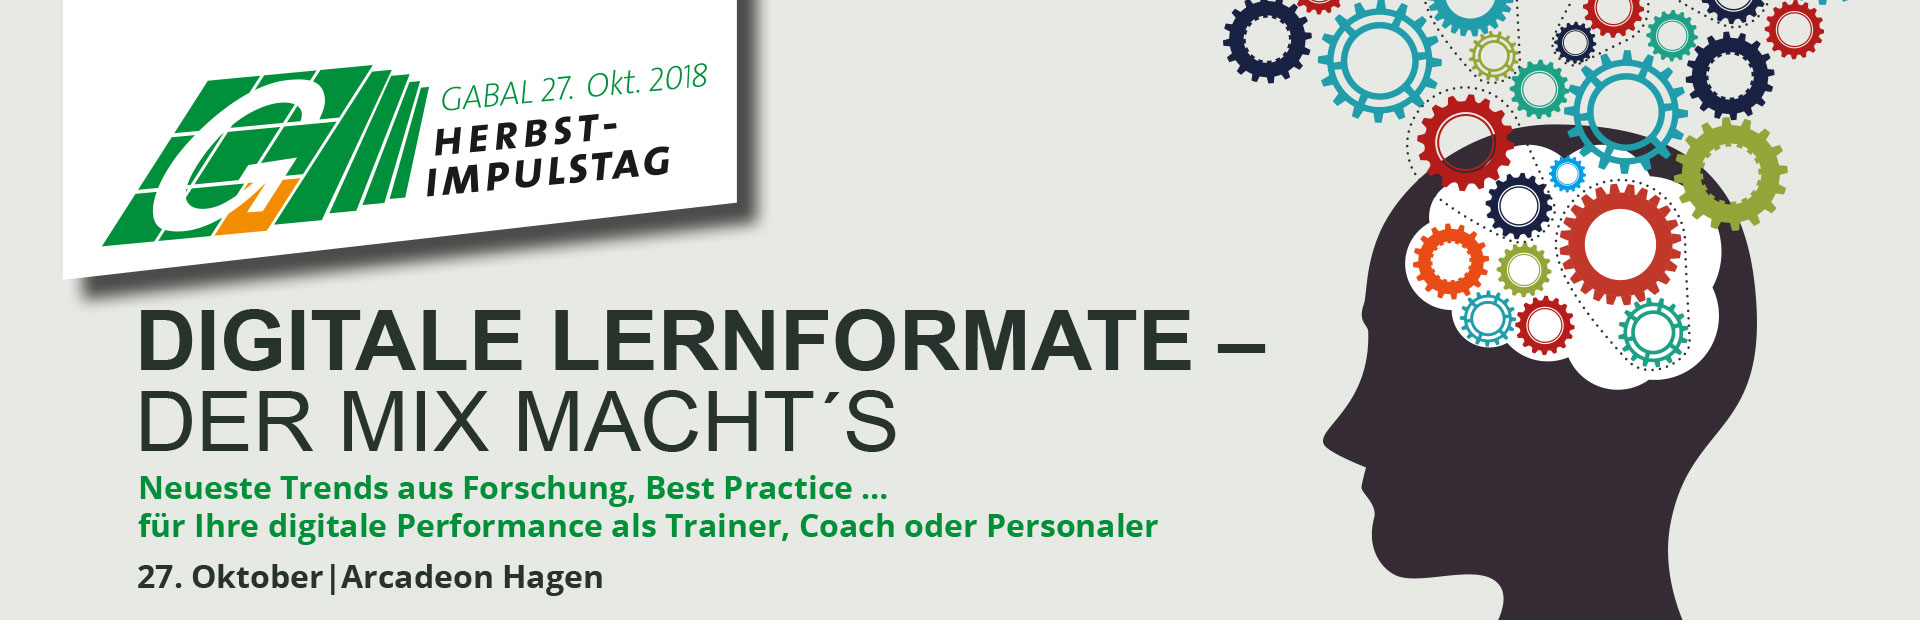 Digitale-Lernformate-Trainer